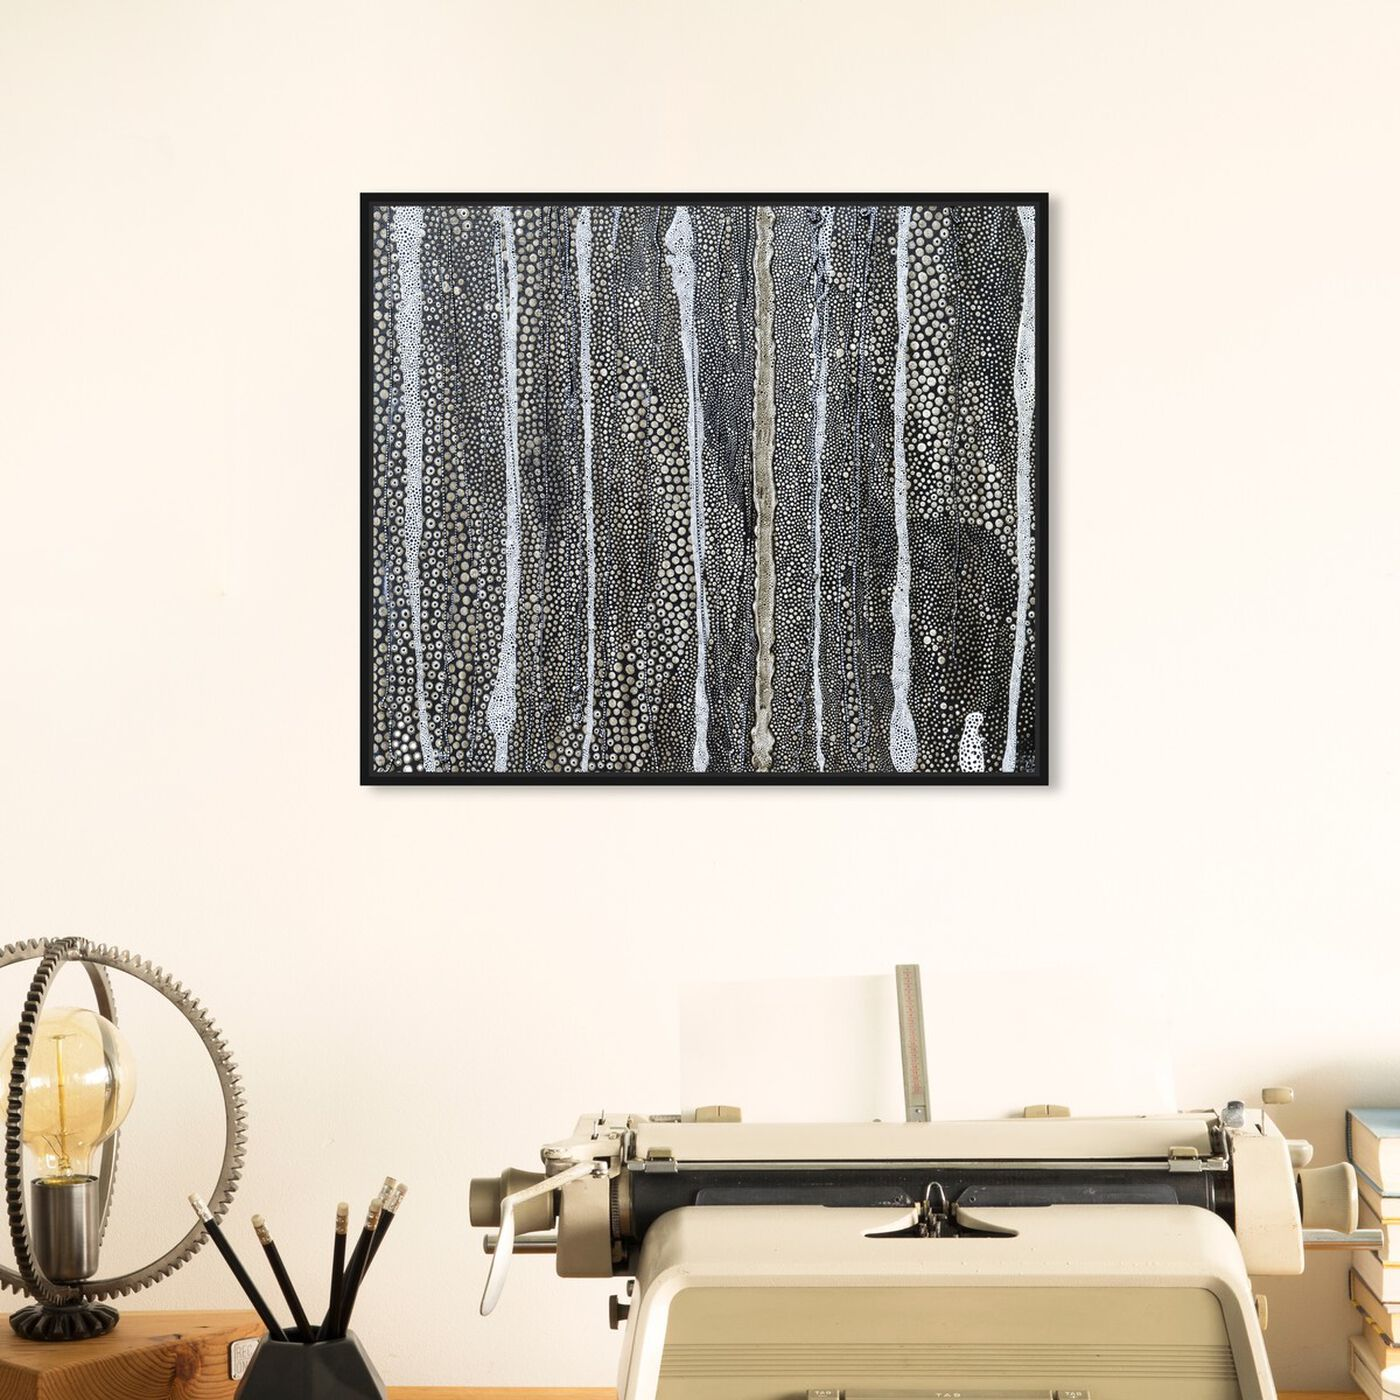 Hanging view of Enriqueta Ahrensburg - Black and white featuring abstract and textures art.